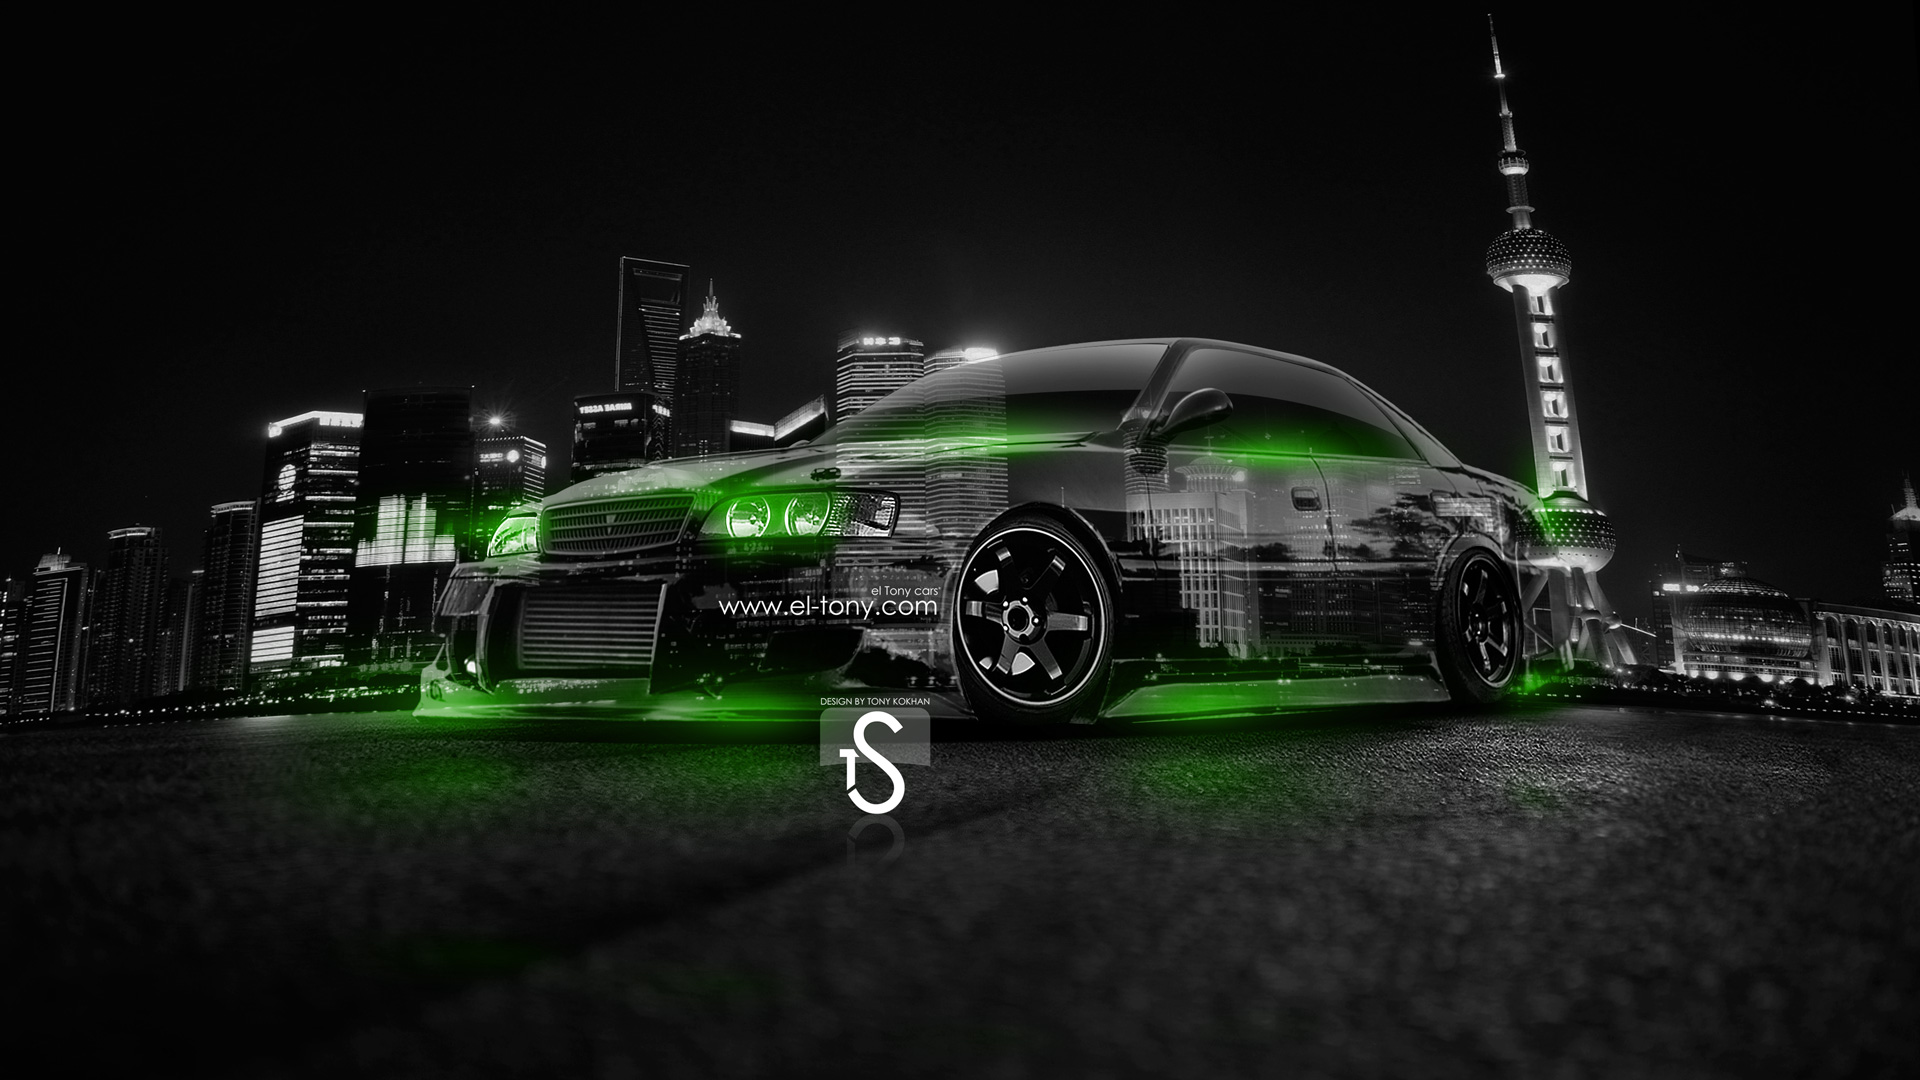 Toyota Chaser JZX100 JDM Crystal City Car 2014 .